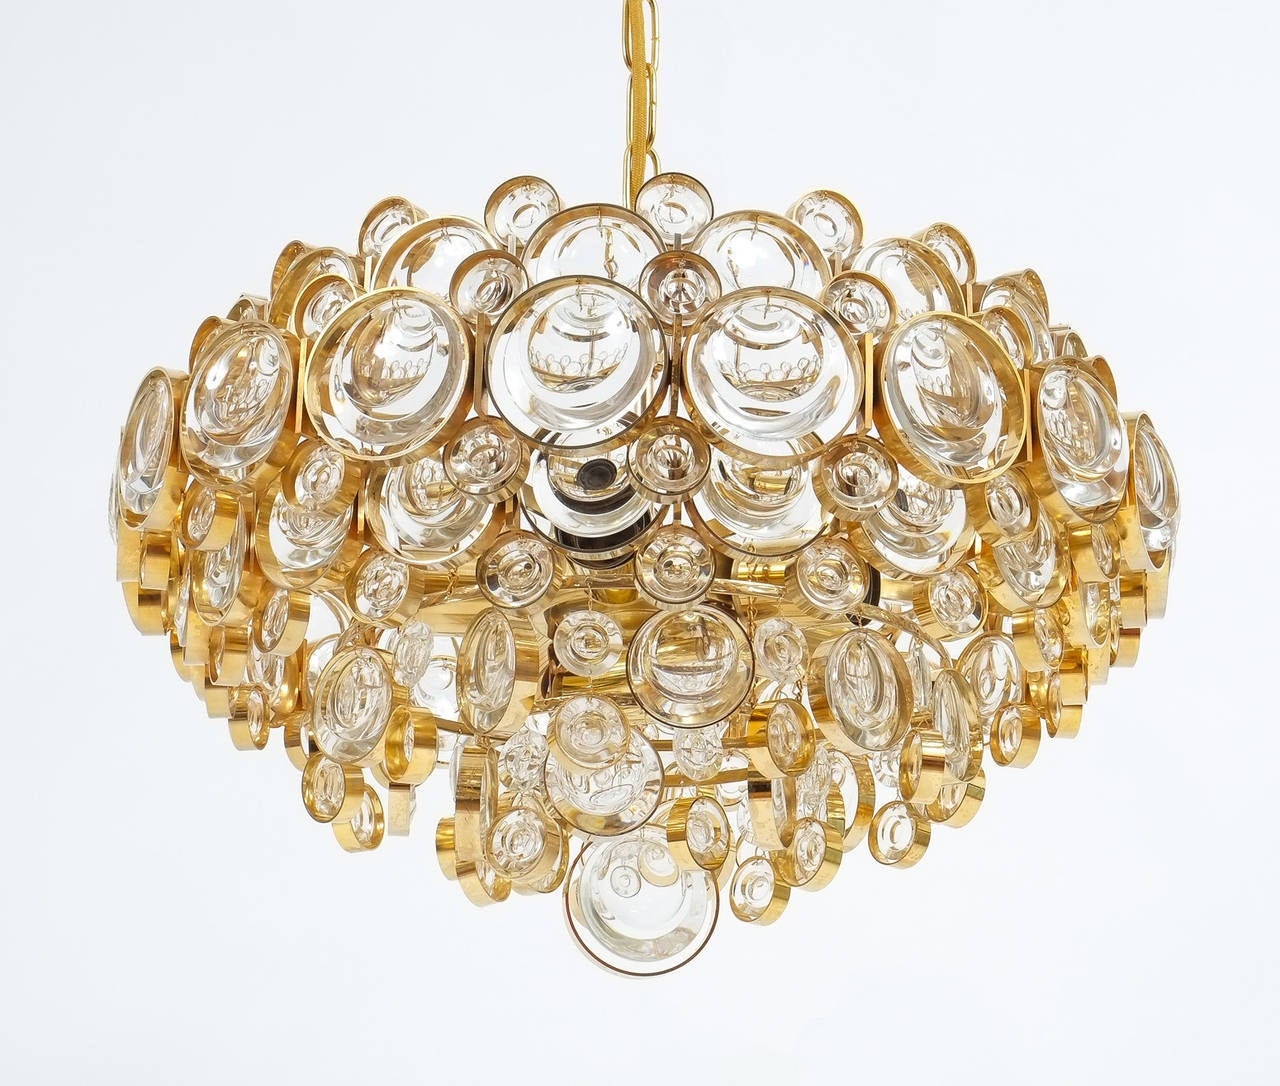 Large Gold Palwa Brass and Glass Chandelier Lamp, Germany 1960 For Sale 2